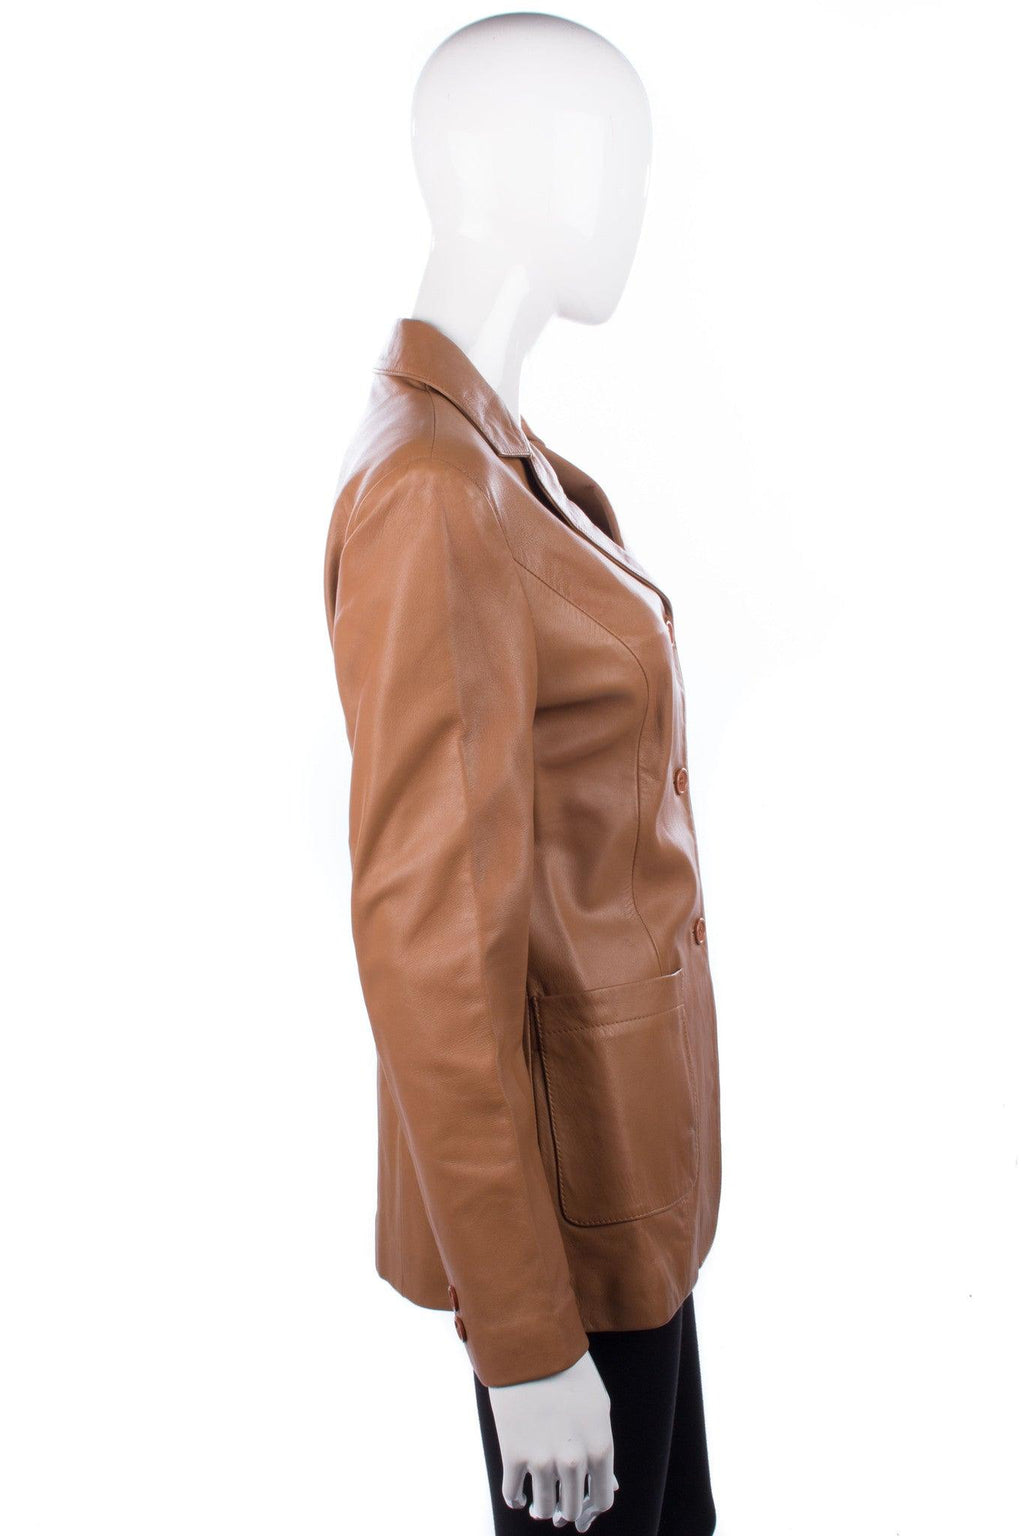 ARMA Soft Leather Jacket Caramel Size 10